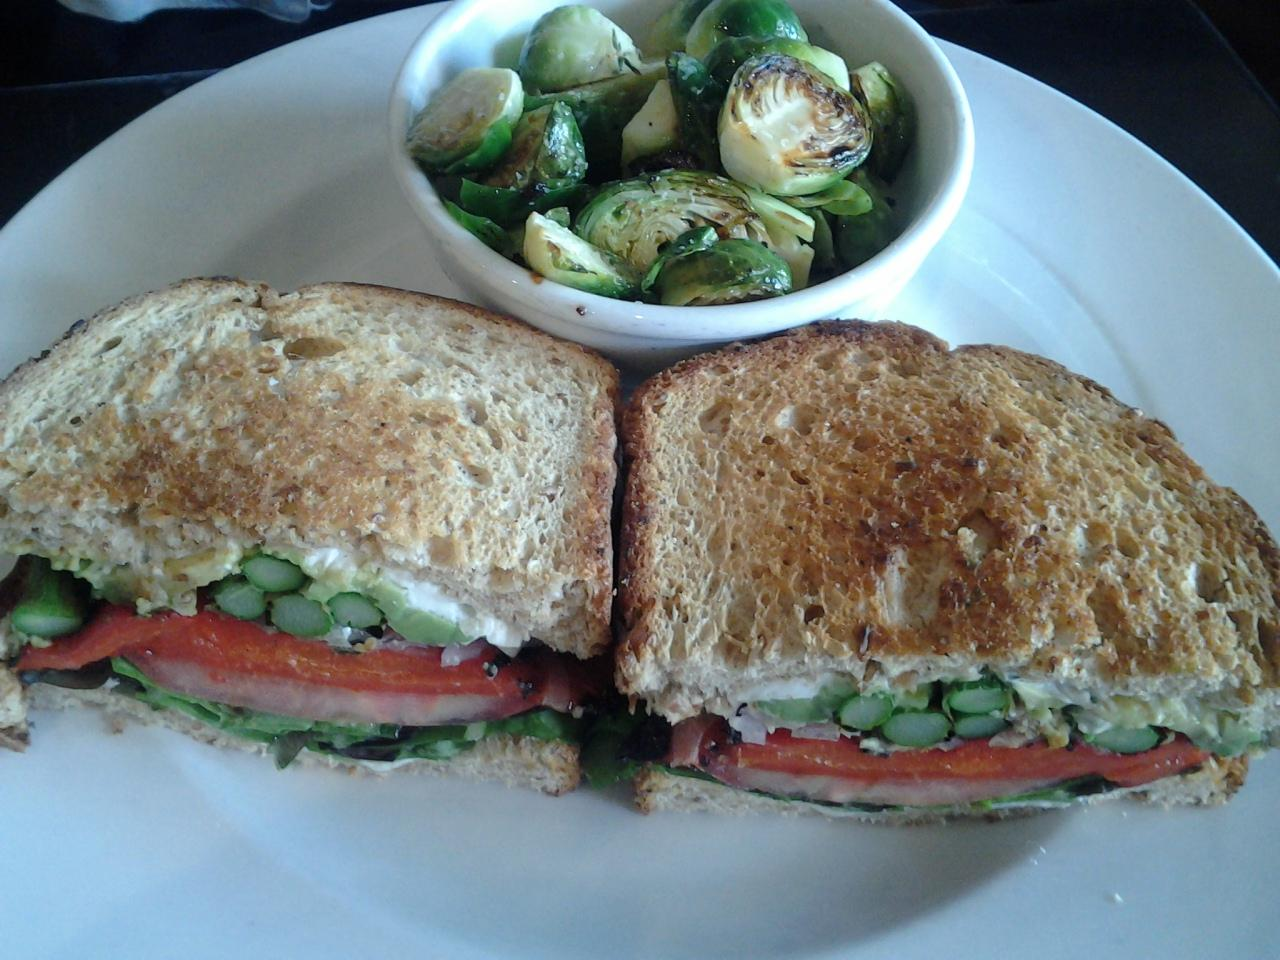 Crave #food veggie sandwich with asparagus. Brussels sprouts on the side $9